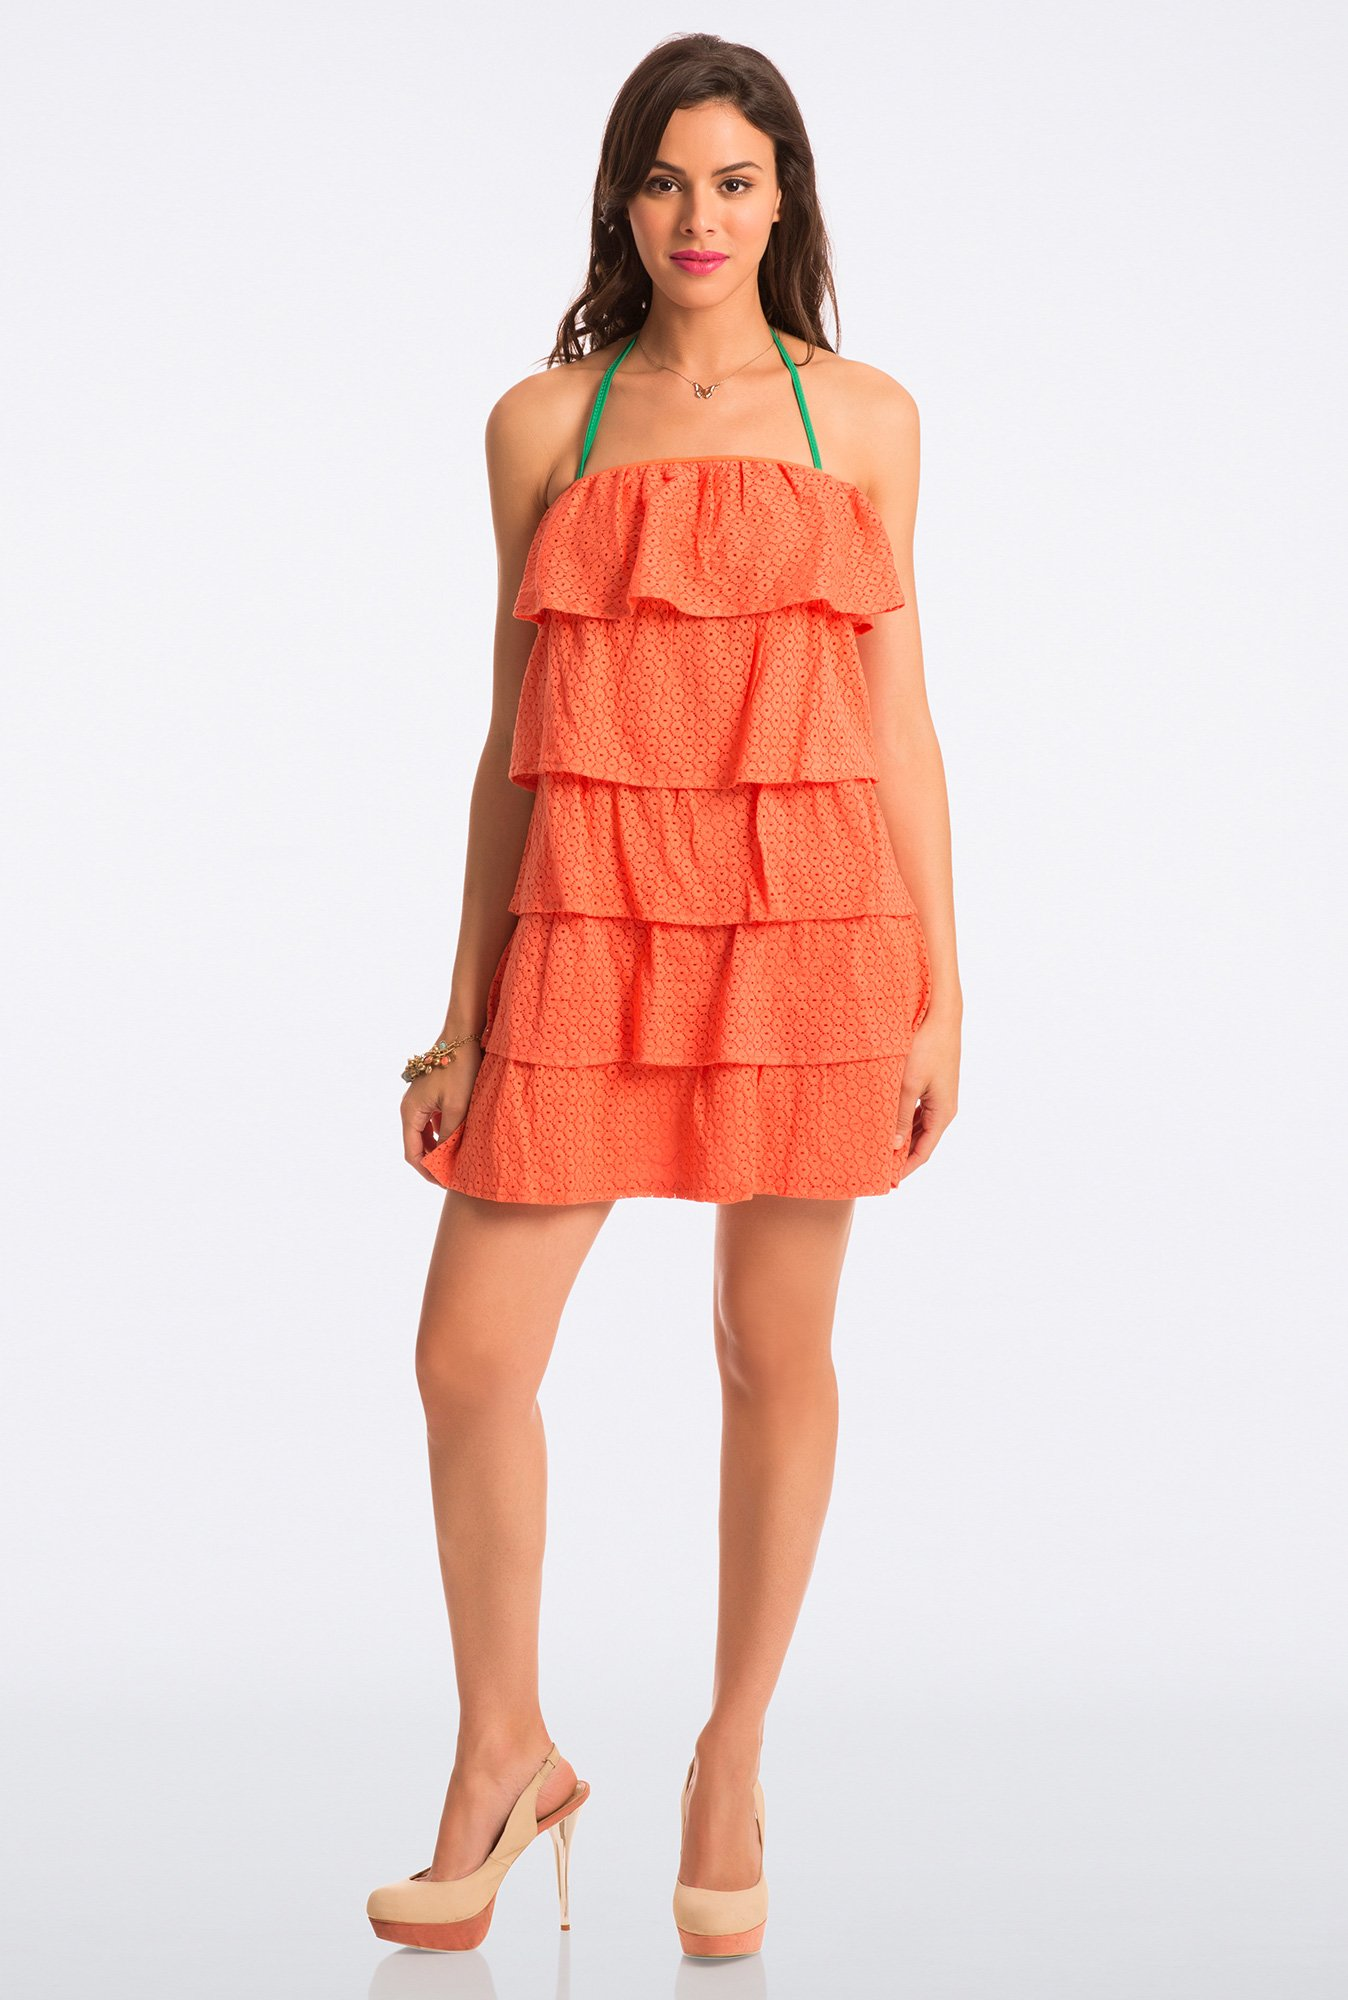 PrettySecrets Orange Lace Strapless Flounce Dress